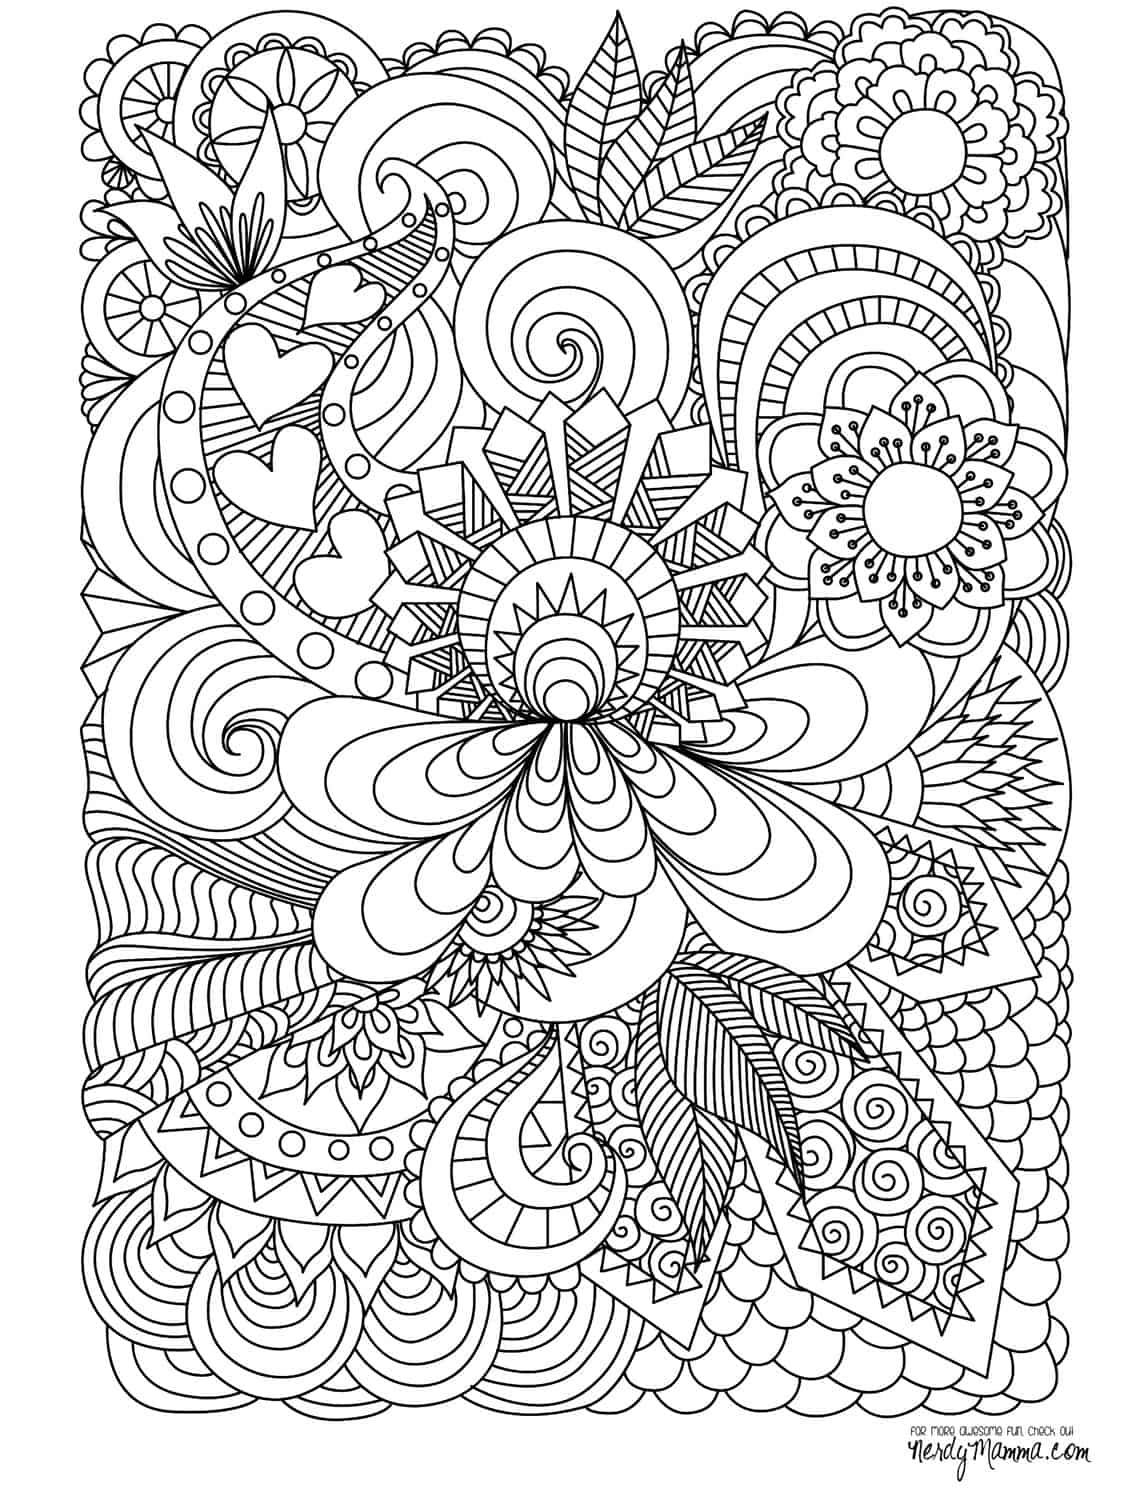 11 Free Printable Adult Coloring Pages Free Printable Coloring Pages Adults